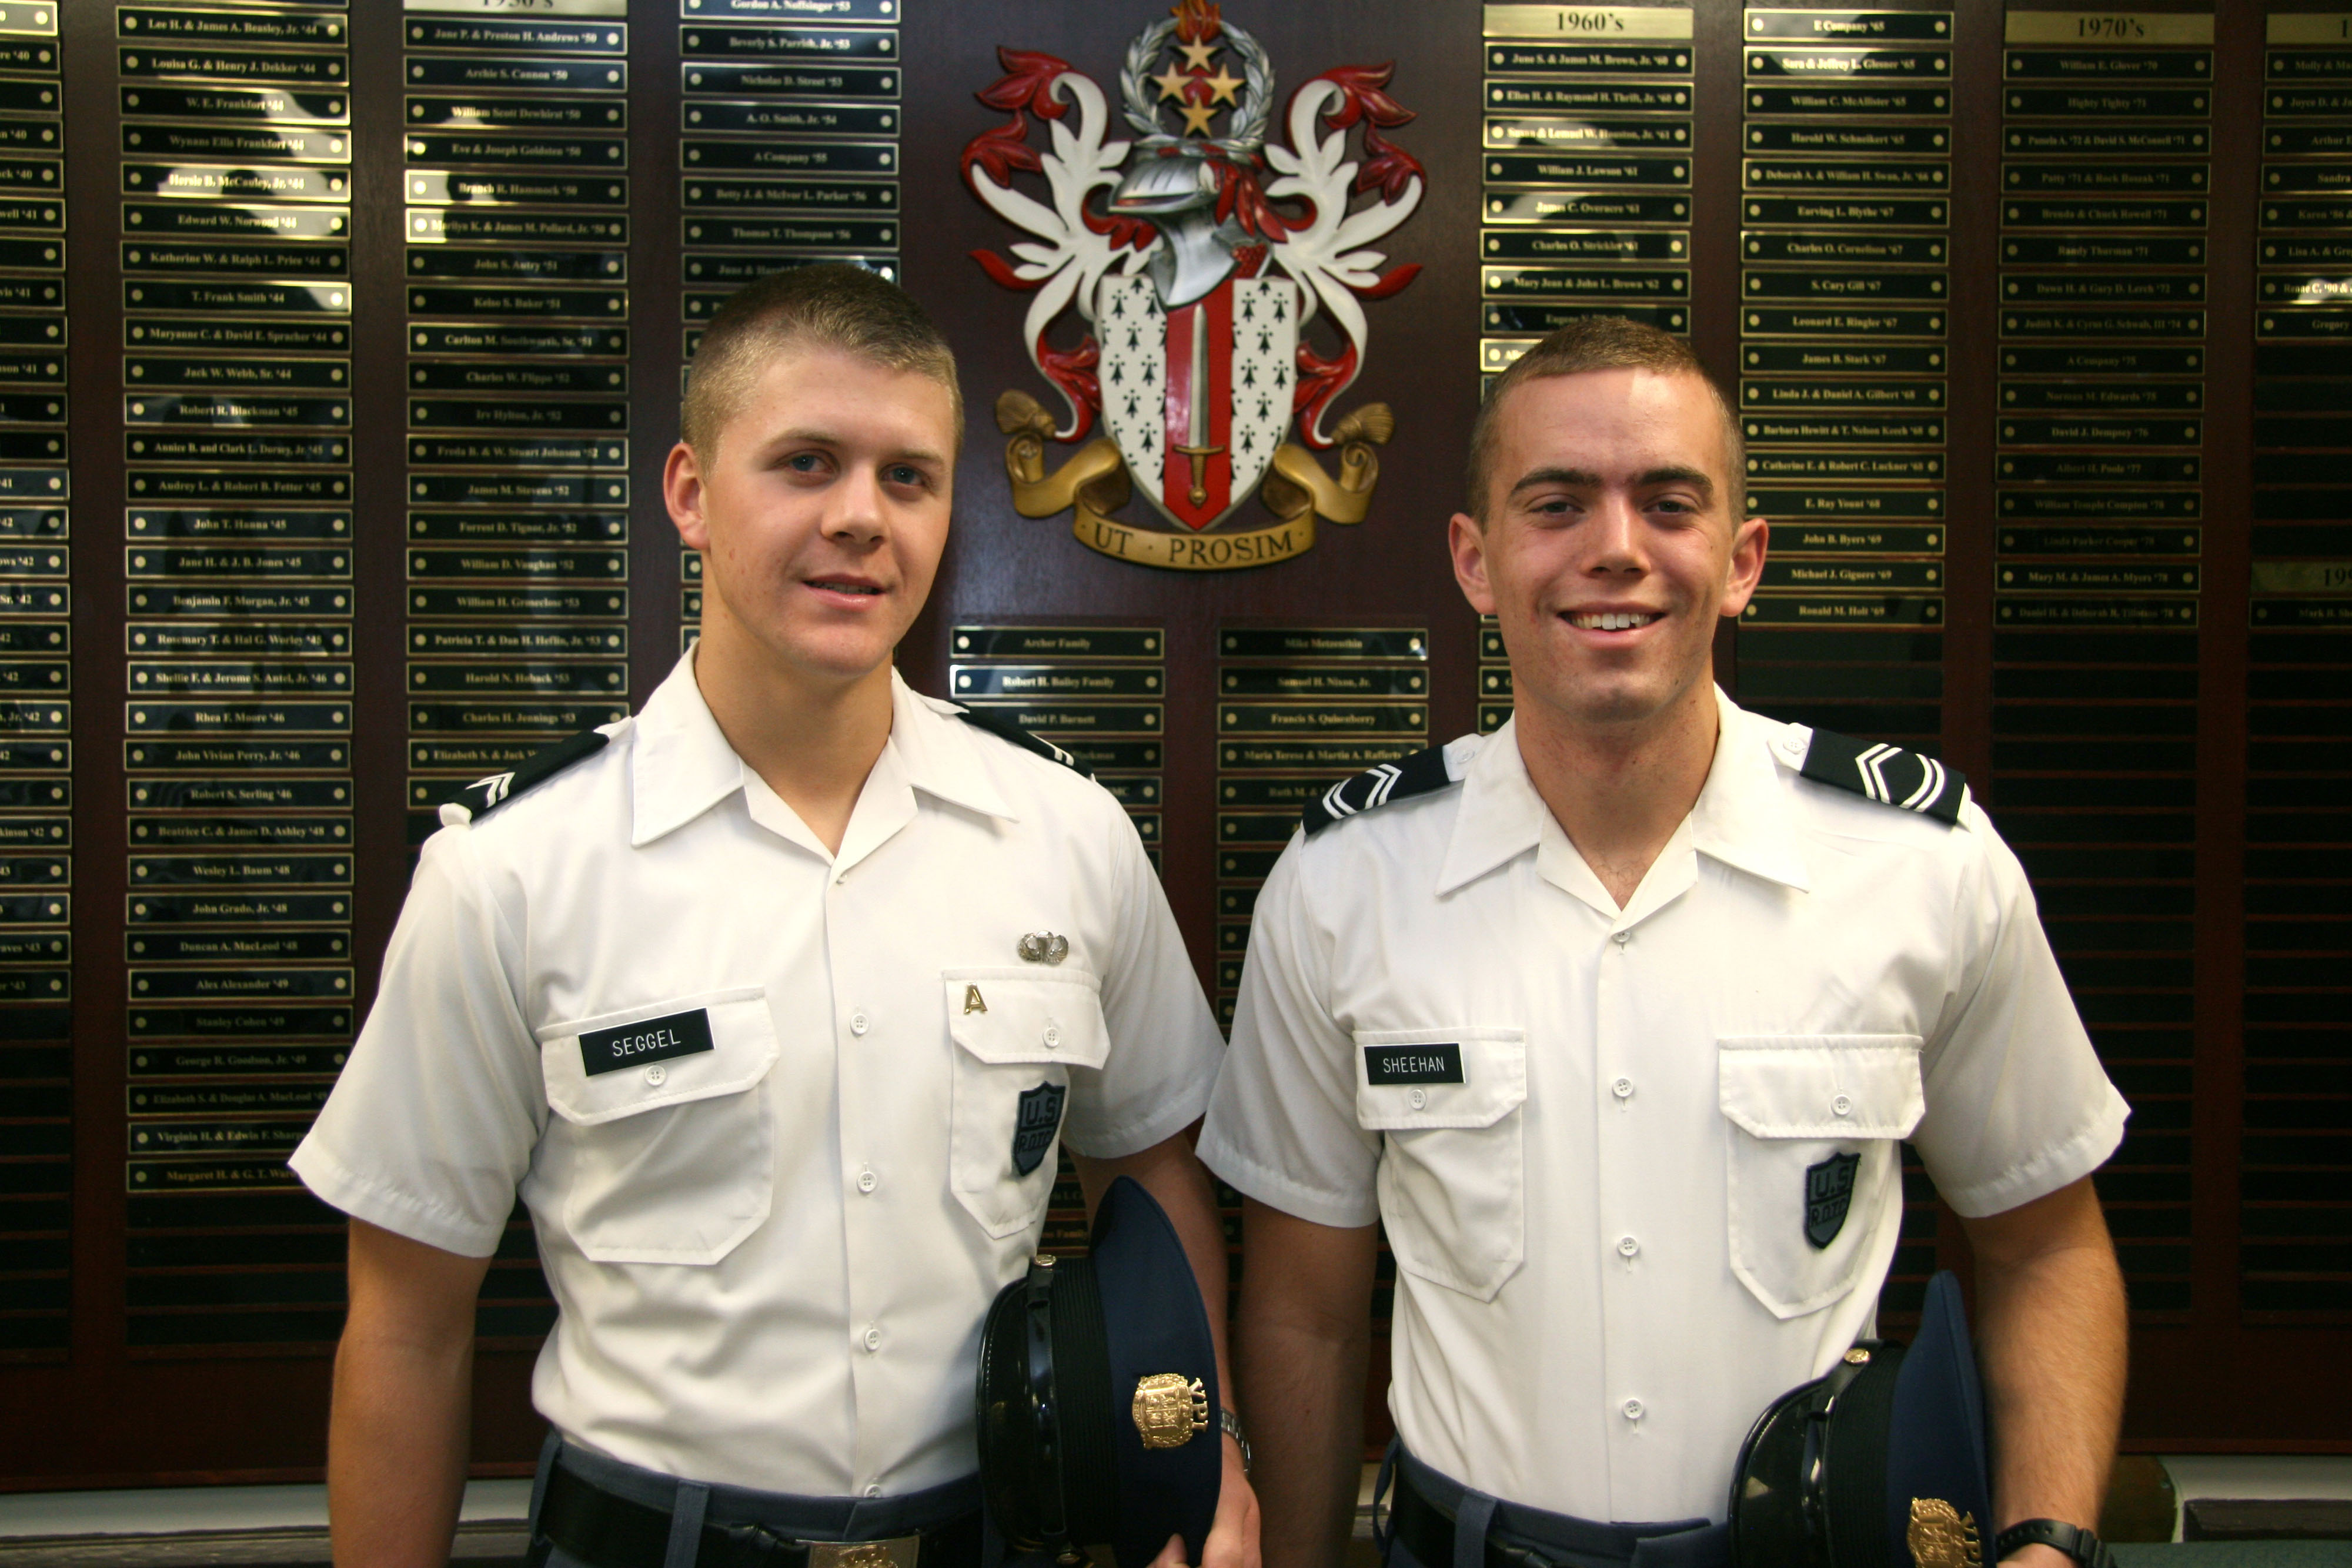 From left to right are Cadets Peter Seggel and James Sheehan